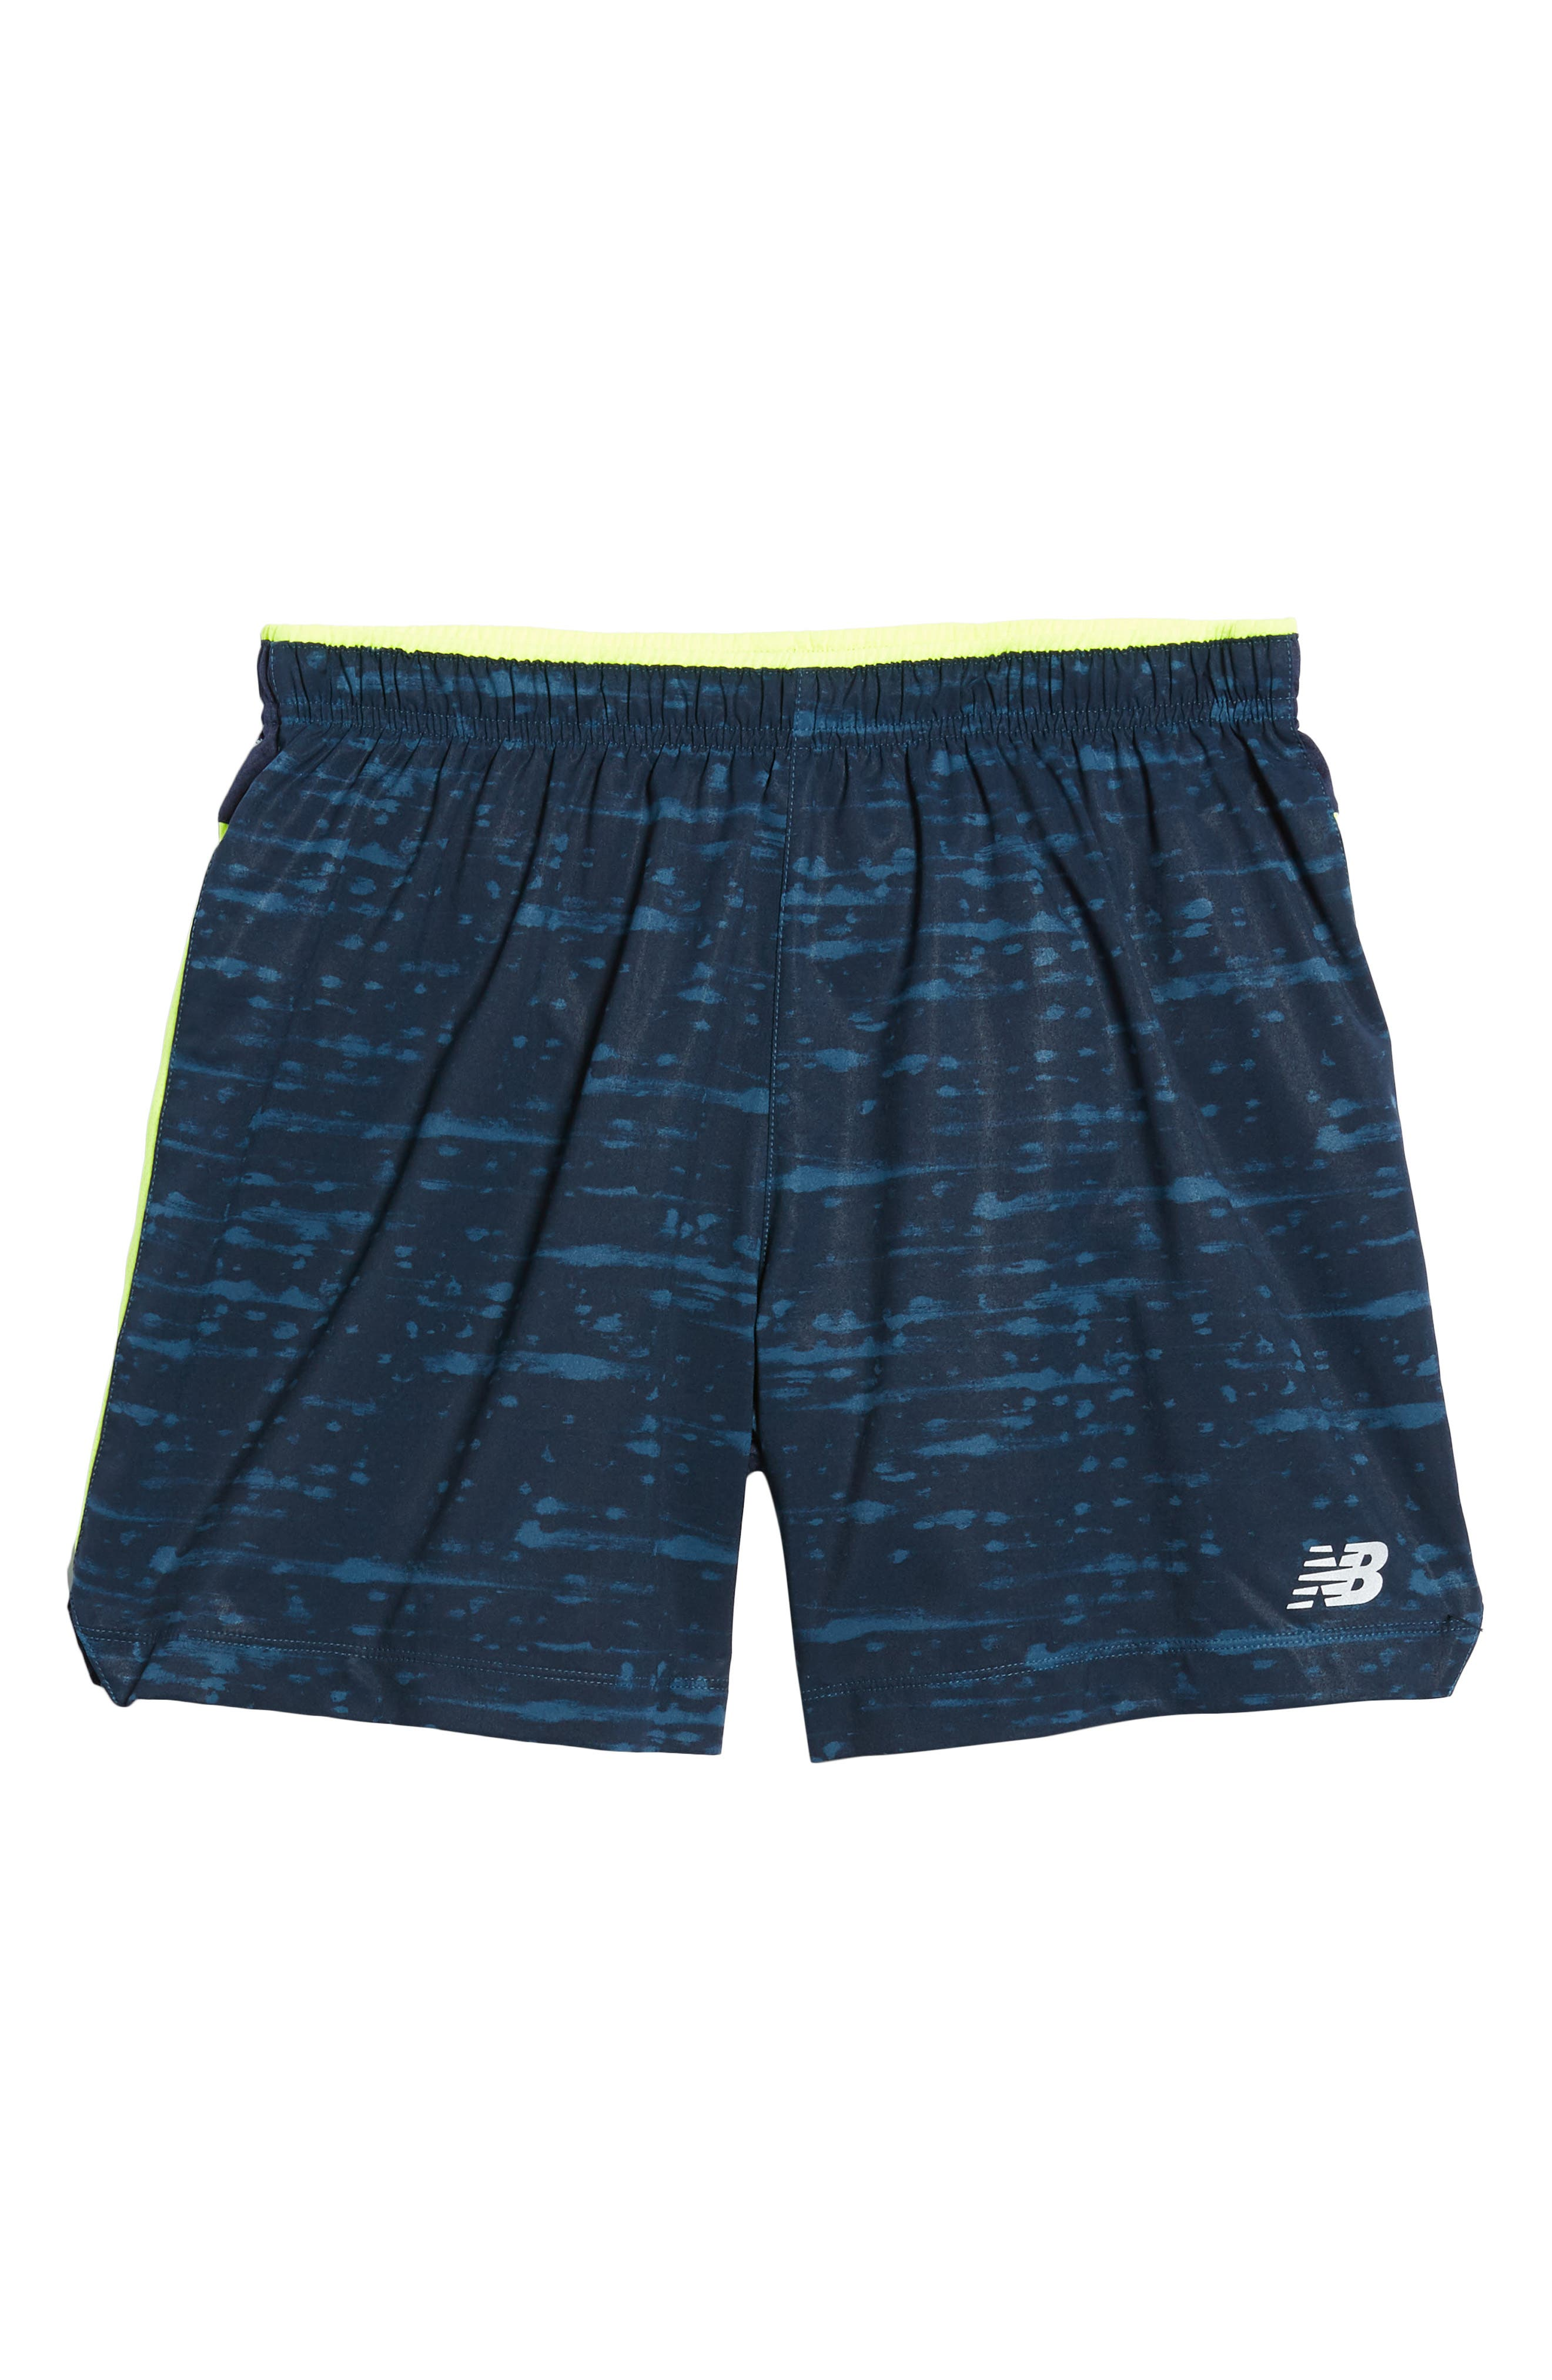 Impact Shorts,                             Alternate thumbnail 5, color,                             North Sea